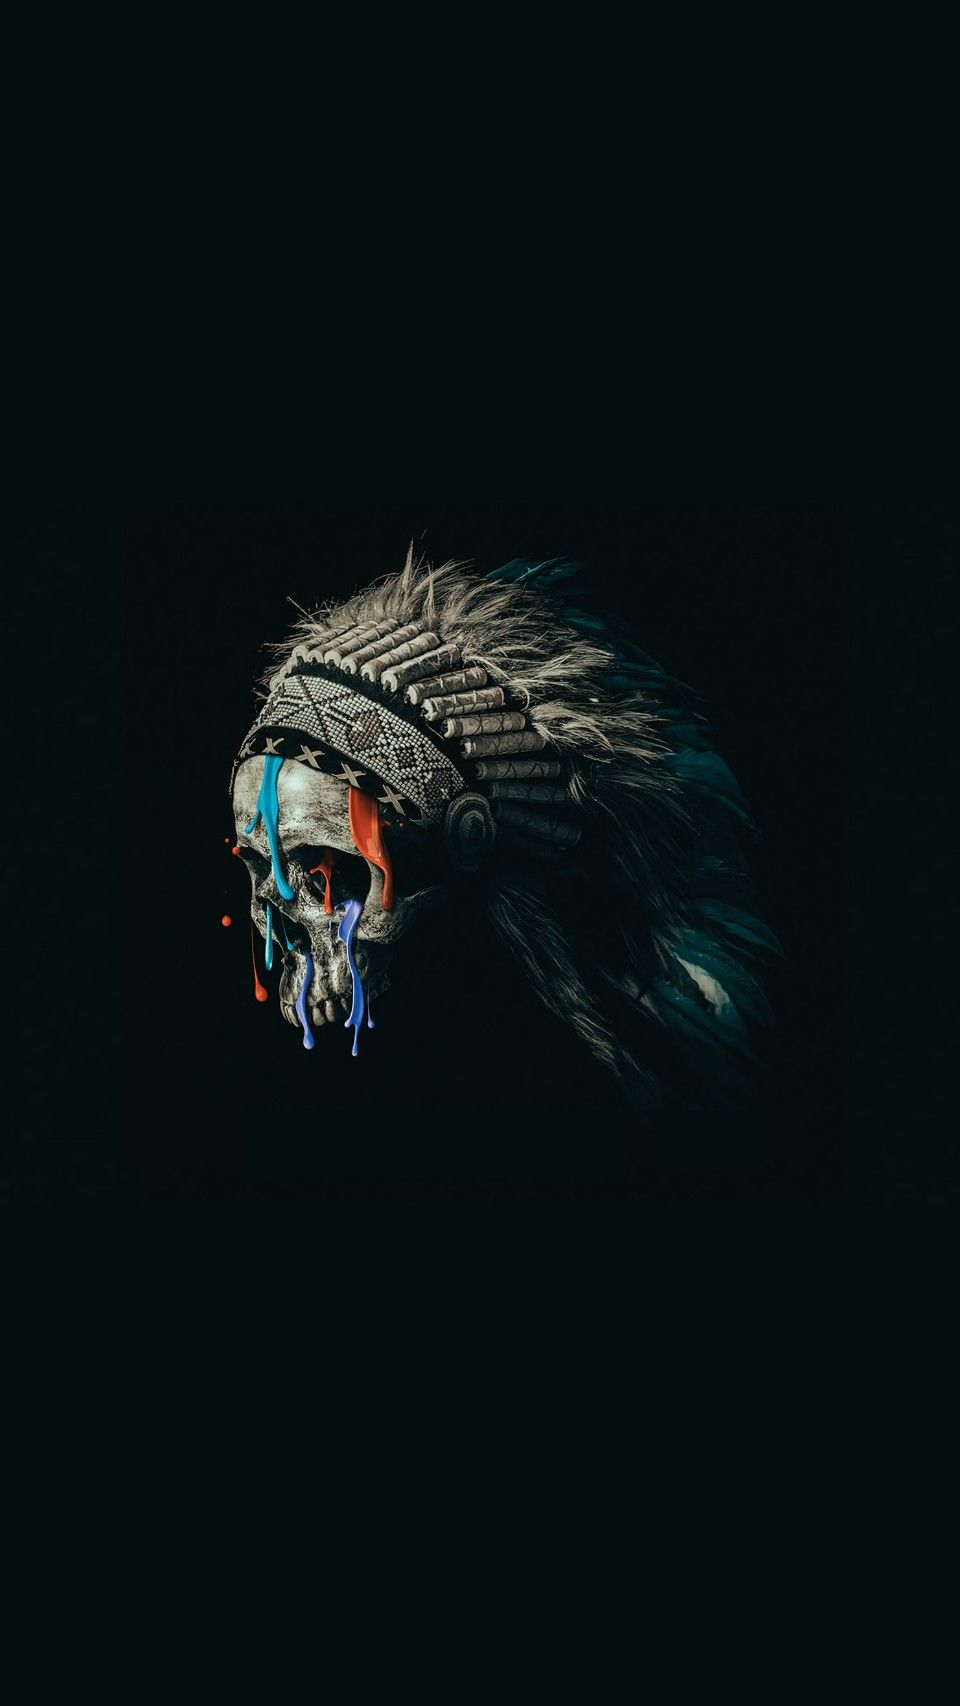 Explore the Top of Black Wallpaper Skull for LG This Month from Uploaded by user